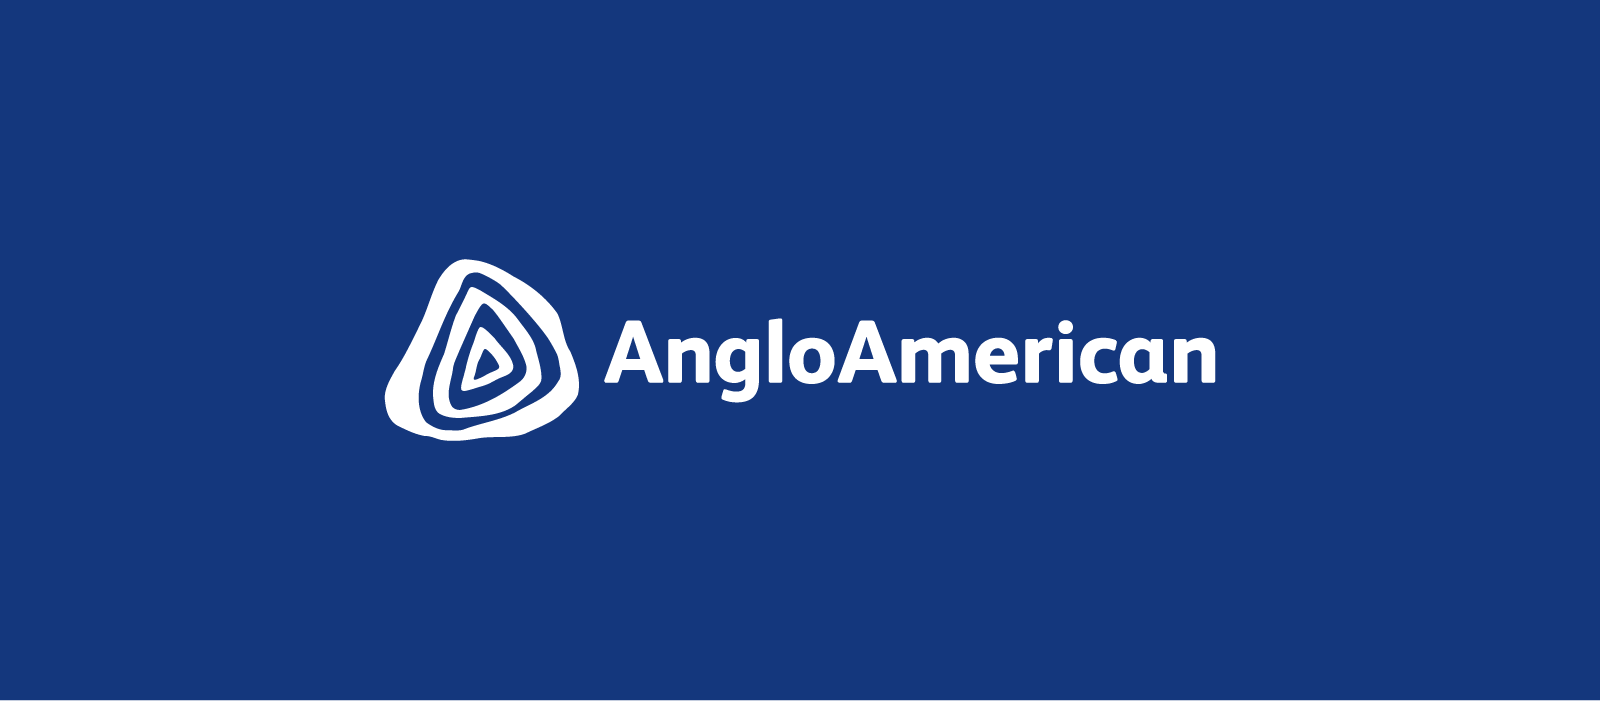 Anglo American vagas